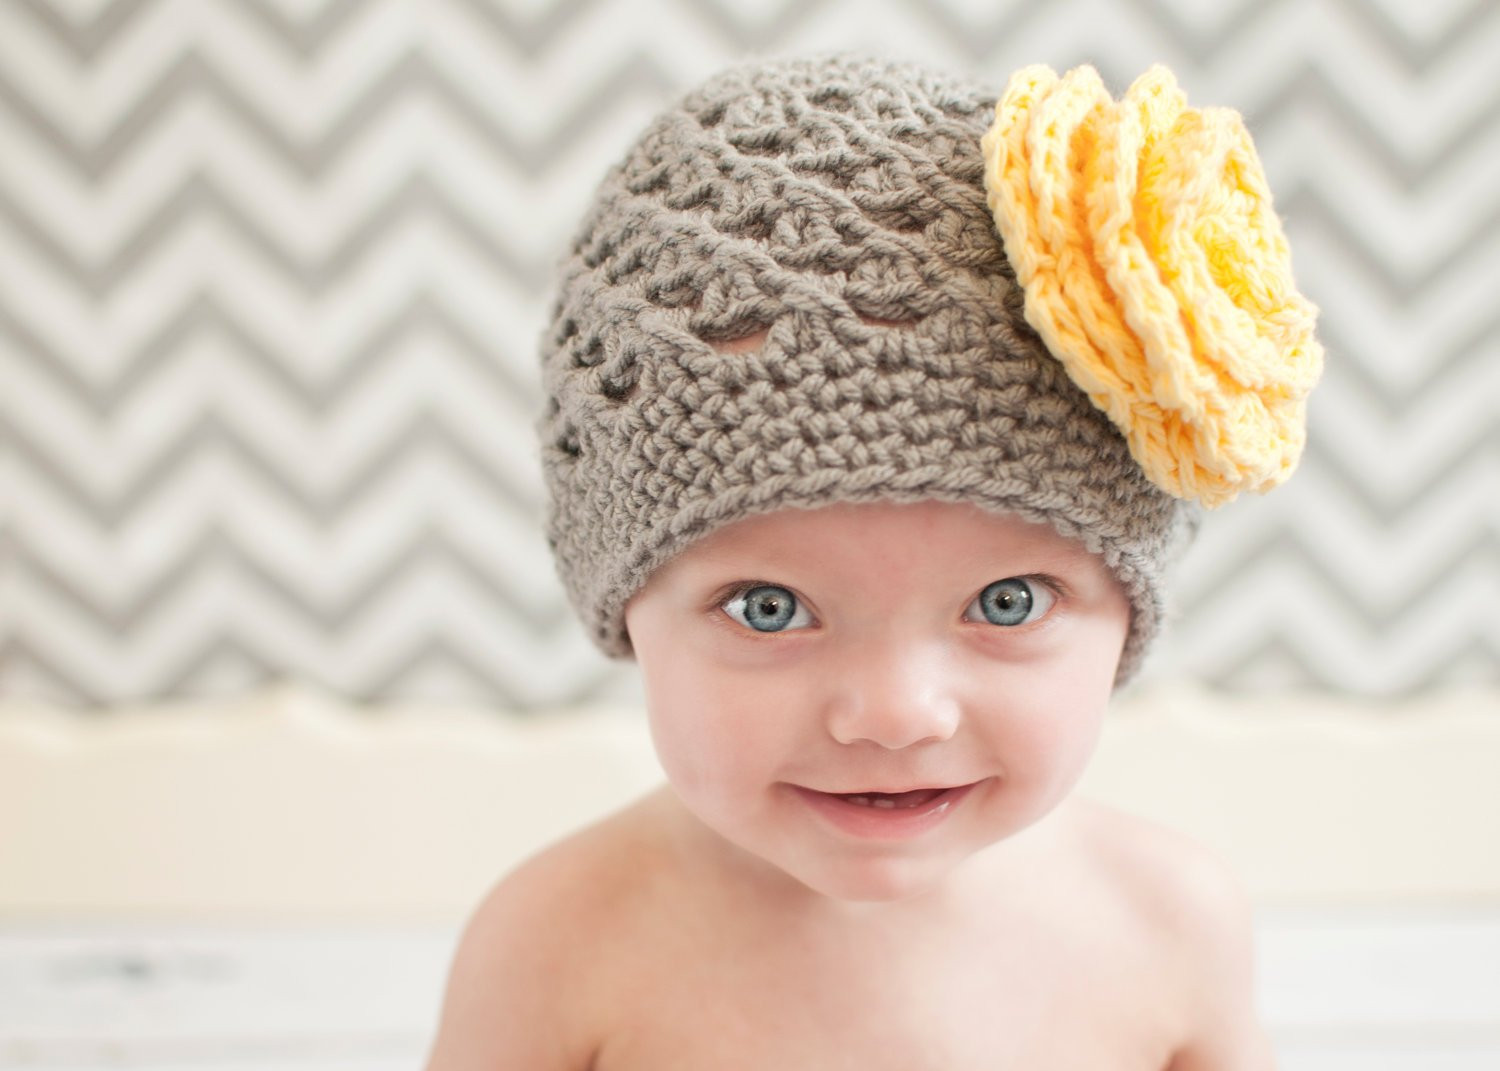 Elegant Baby Girl Hat Girls Hat Baby Hat Crochet Baby Hat Kids Crochet Hat for Girl Of Amazing 41 Pictures Crochet Hat for Girl